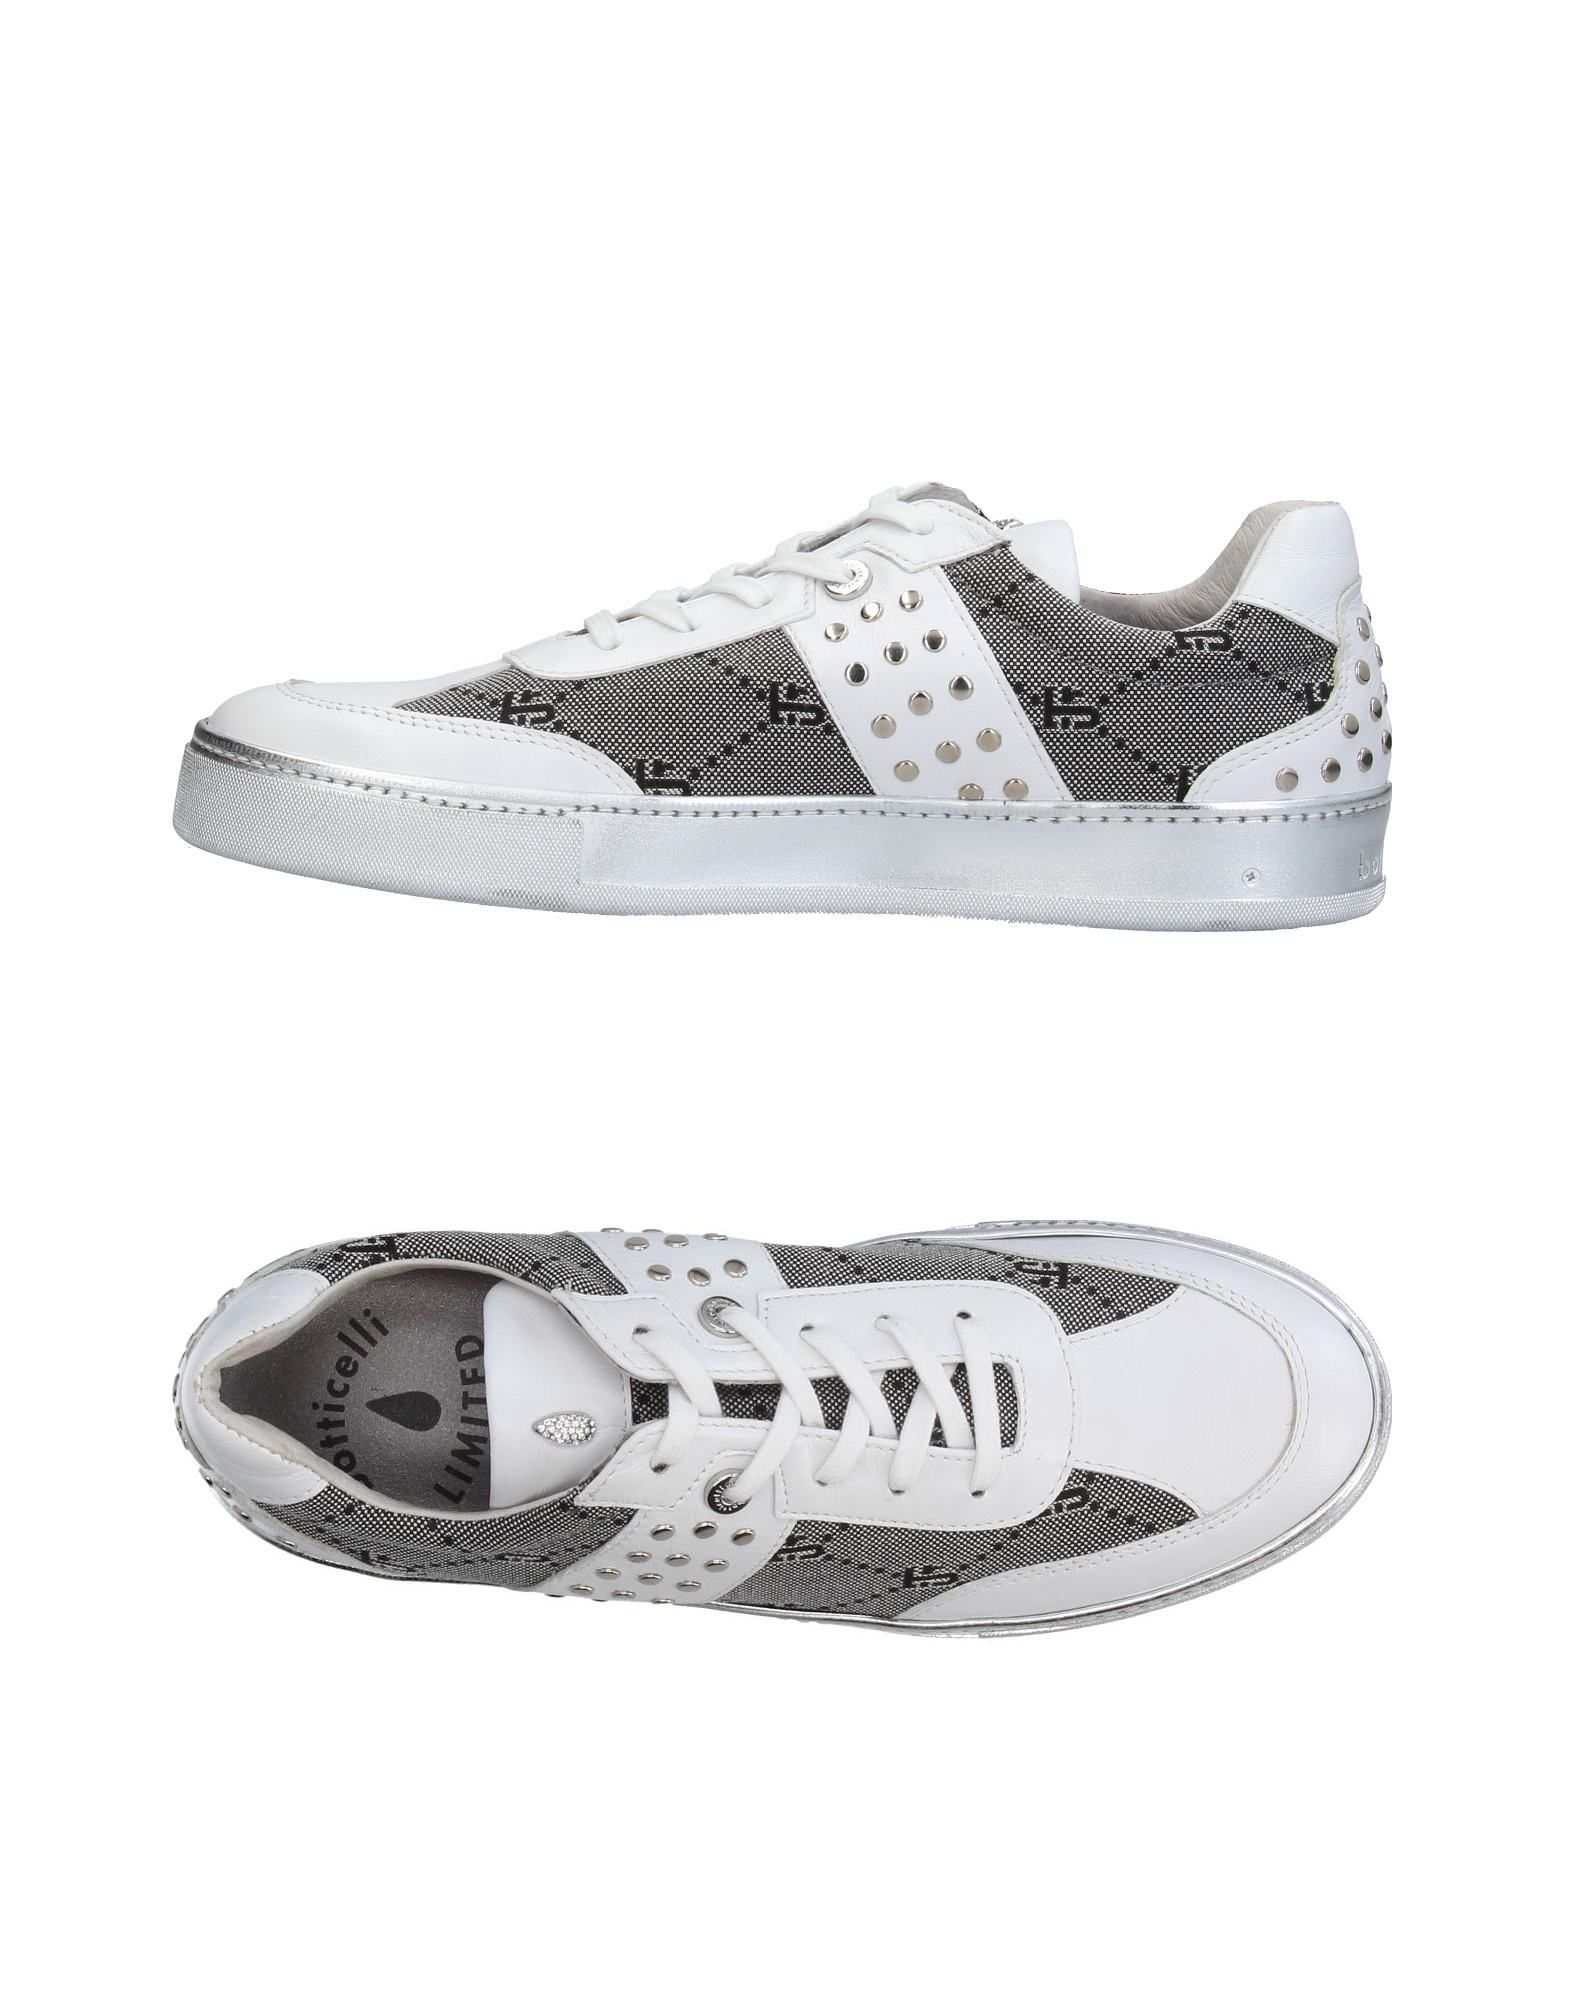 Sneakers Botticelli Limited Femme - Sneakers Botticelli Limited sur